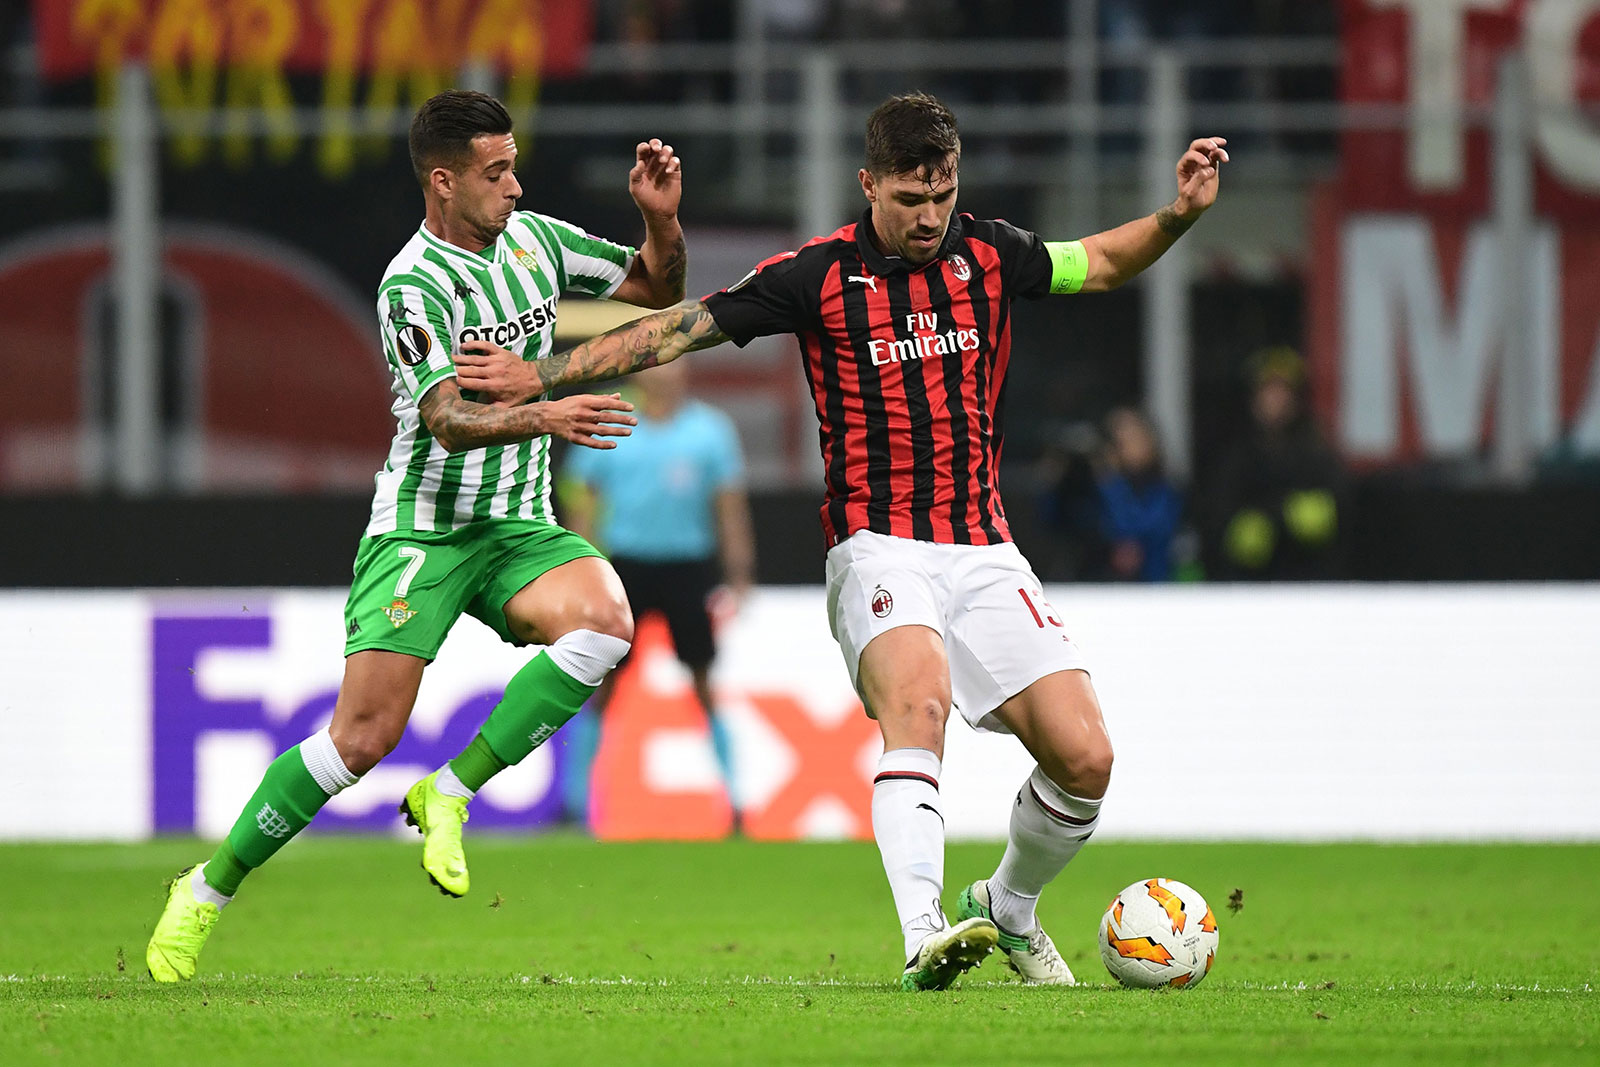 Alessio Romagnoli during Milan-Real Betis at Stadio San Siro on October 25, 2018. (MIGUEL MEDINA/AFP/Getty Images)